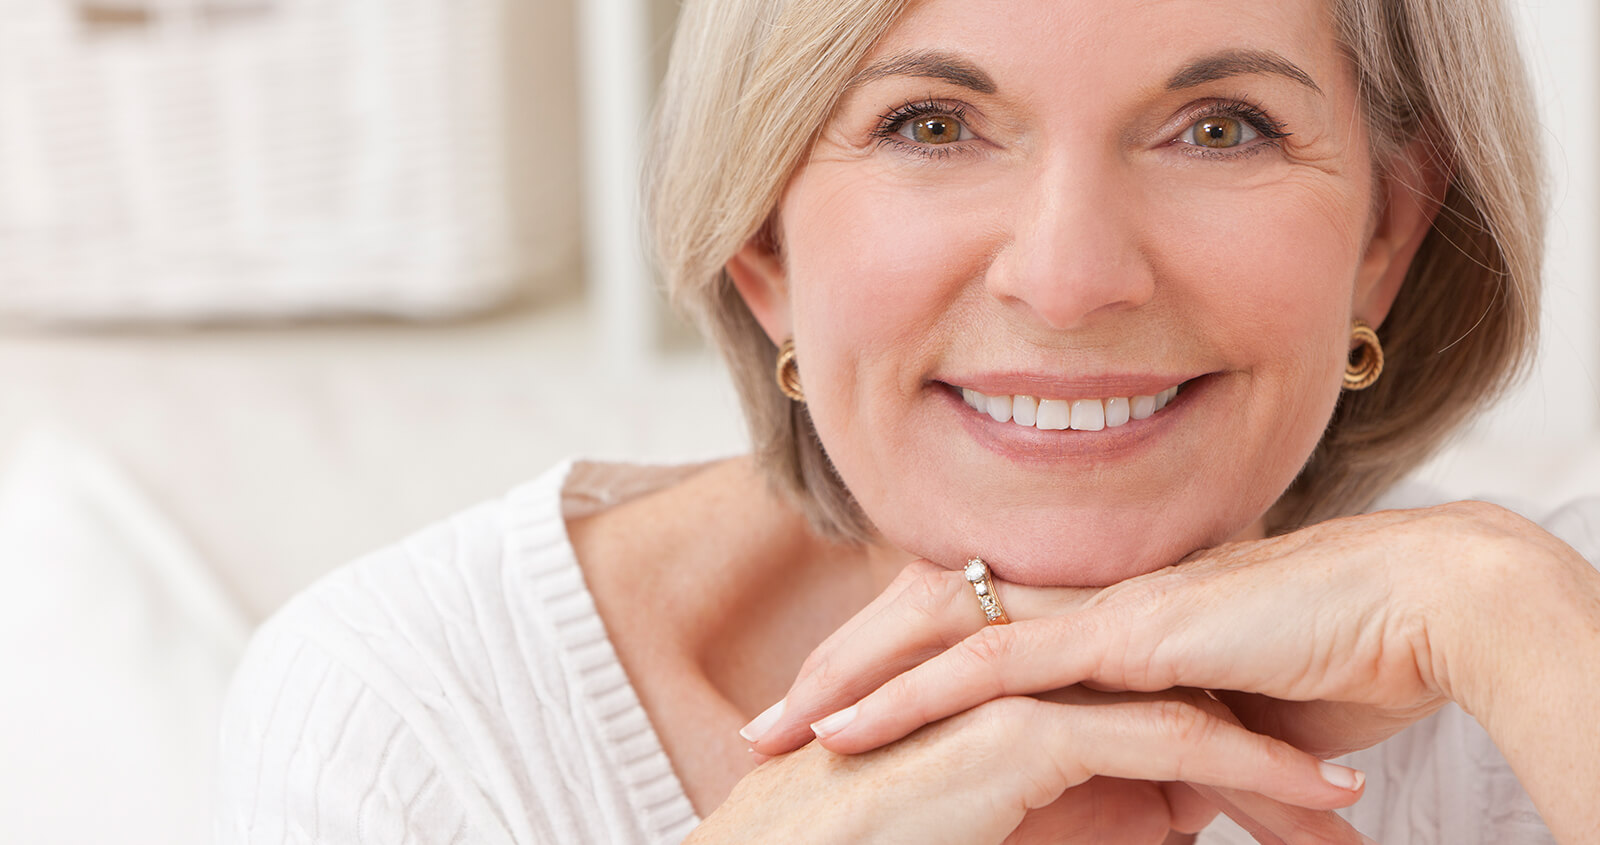 Dental Implants Center at Dr. Troy Schmedding of Family Dentistry in Walnut Creek CA Area